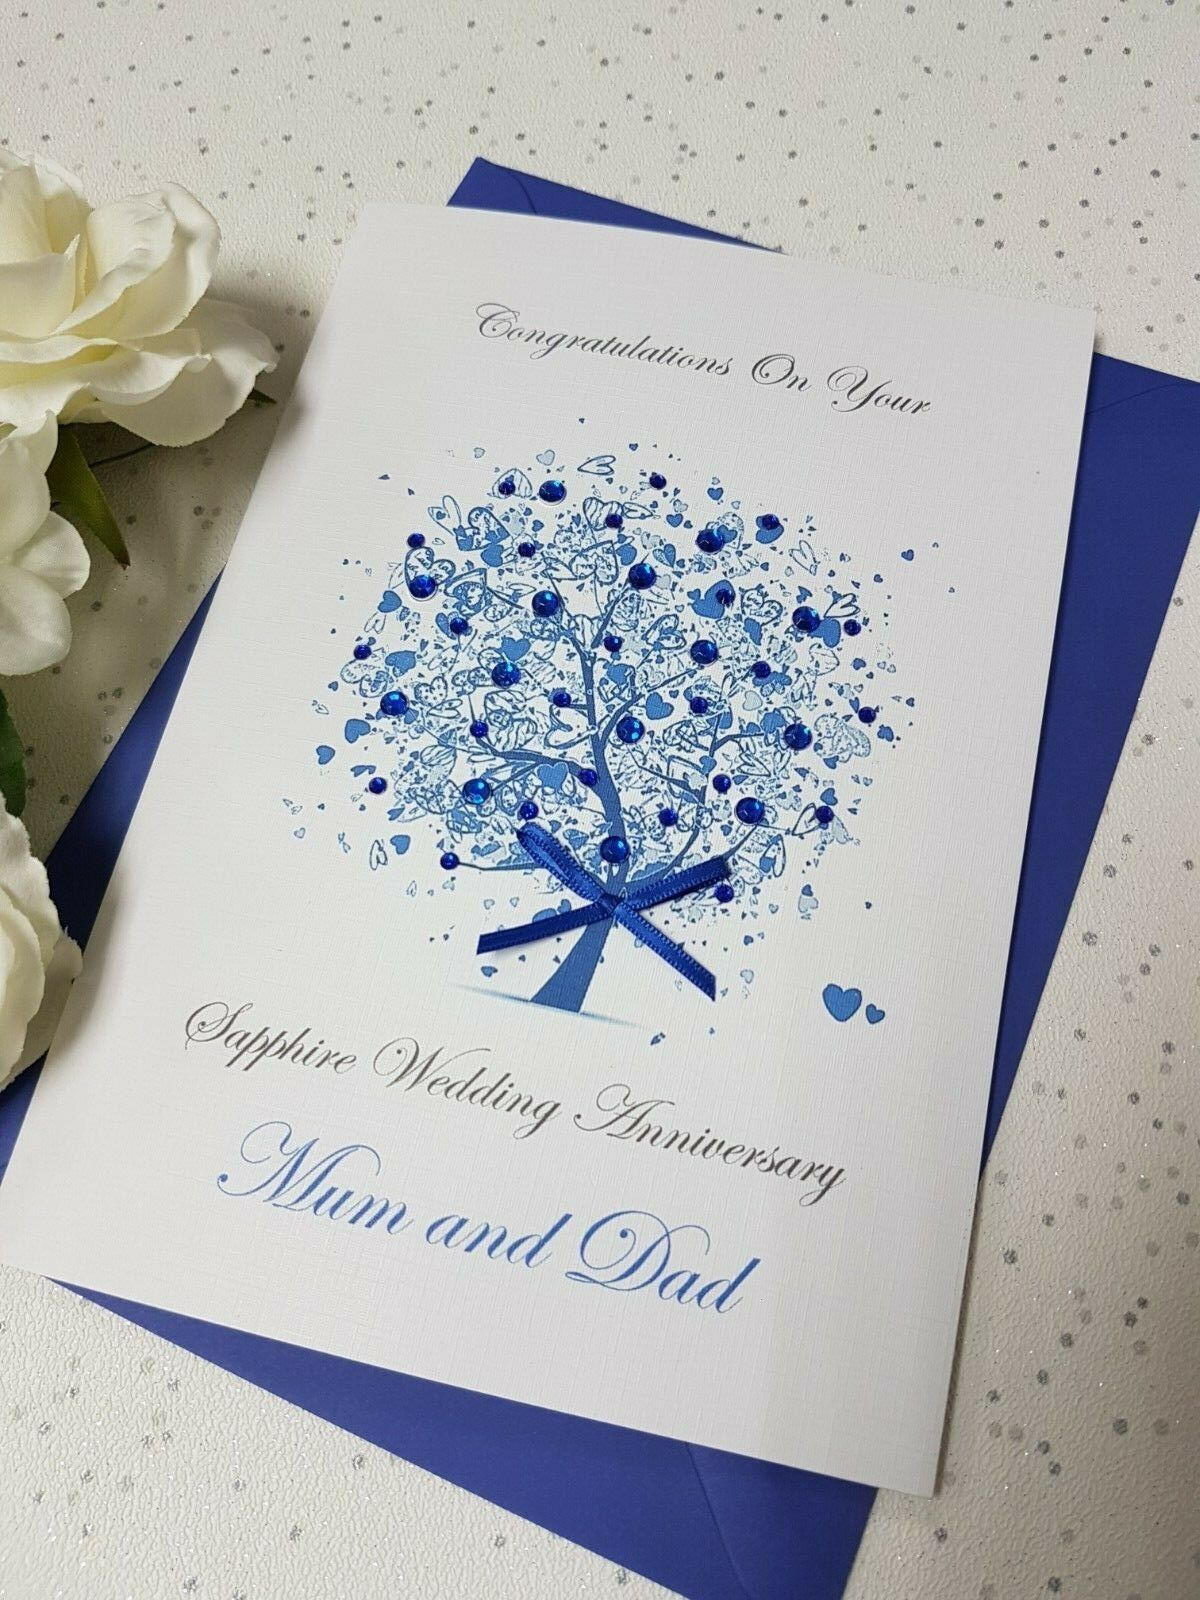 Sapphire 65th 45th Wedding Anniversary Card Handmade Personalised Box Envelope Cards Anniversary Cards Handmade Wedding Anniversary Cards Anniversary Cards